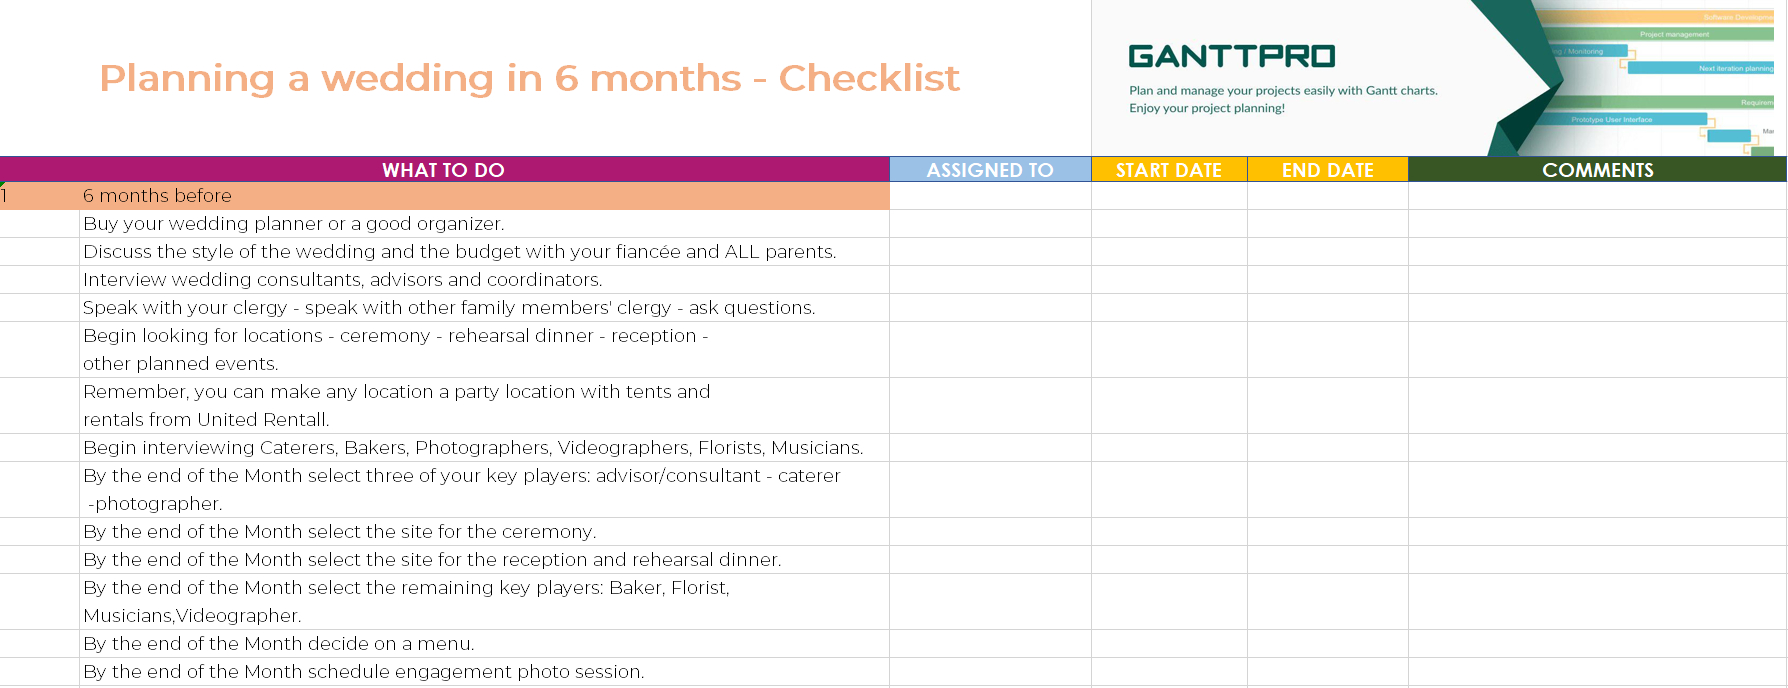 Planning A Wedding In 6 Months Checklist | Excel Template